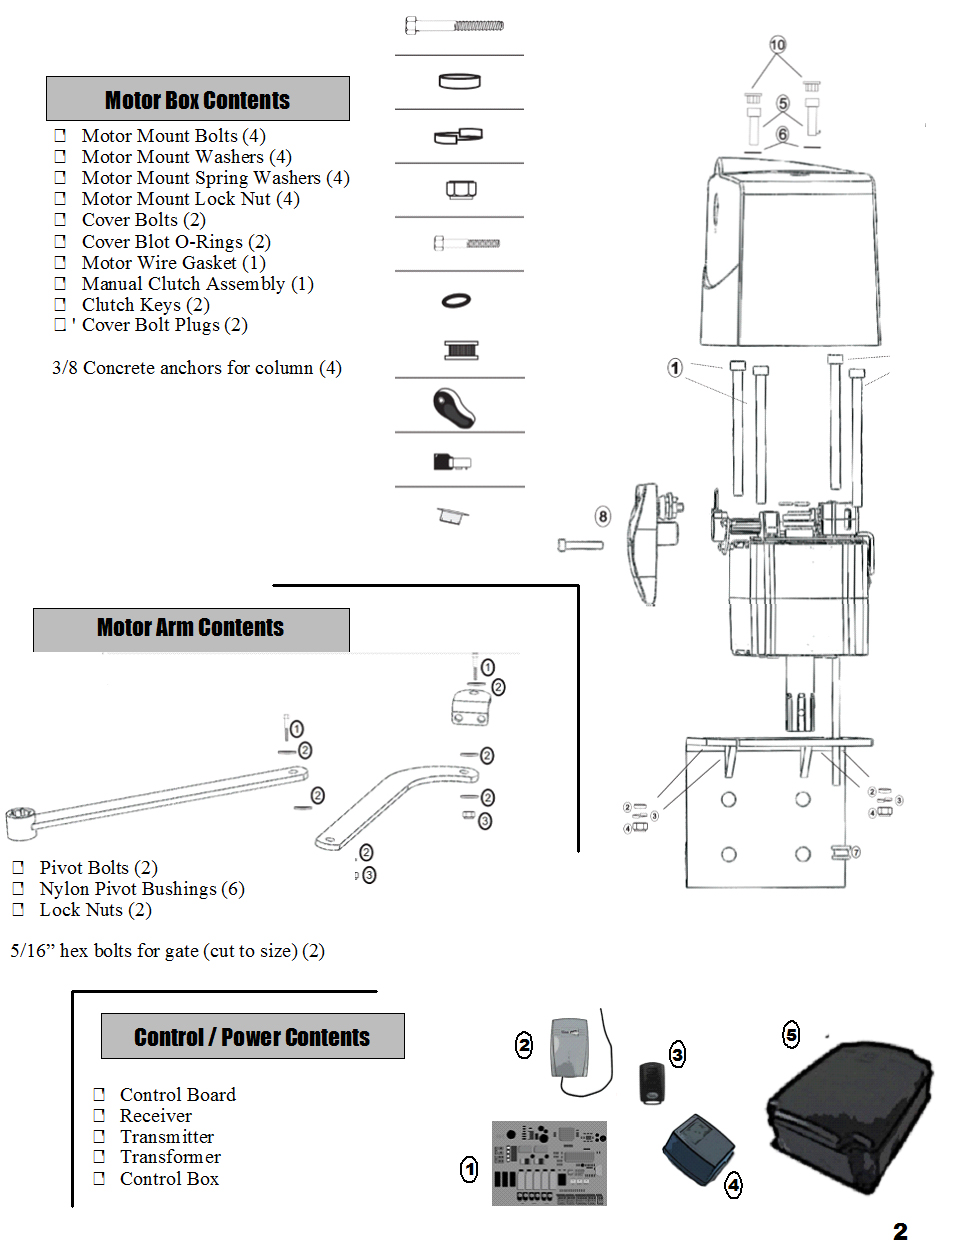 Mighty Mule Exit Wand Wiring Diagram Diy Enthusiasts Diagrams Electric Gate Motor Estate Swing E Sc 1602 Column Mountable Dual Opener W Rh Gatecrafters Com Circuit Board Troubleshooting